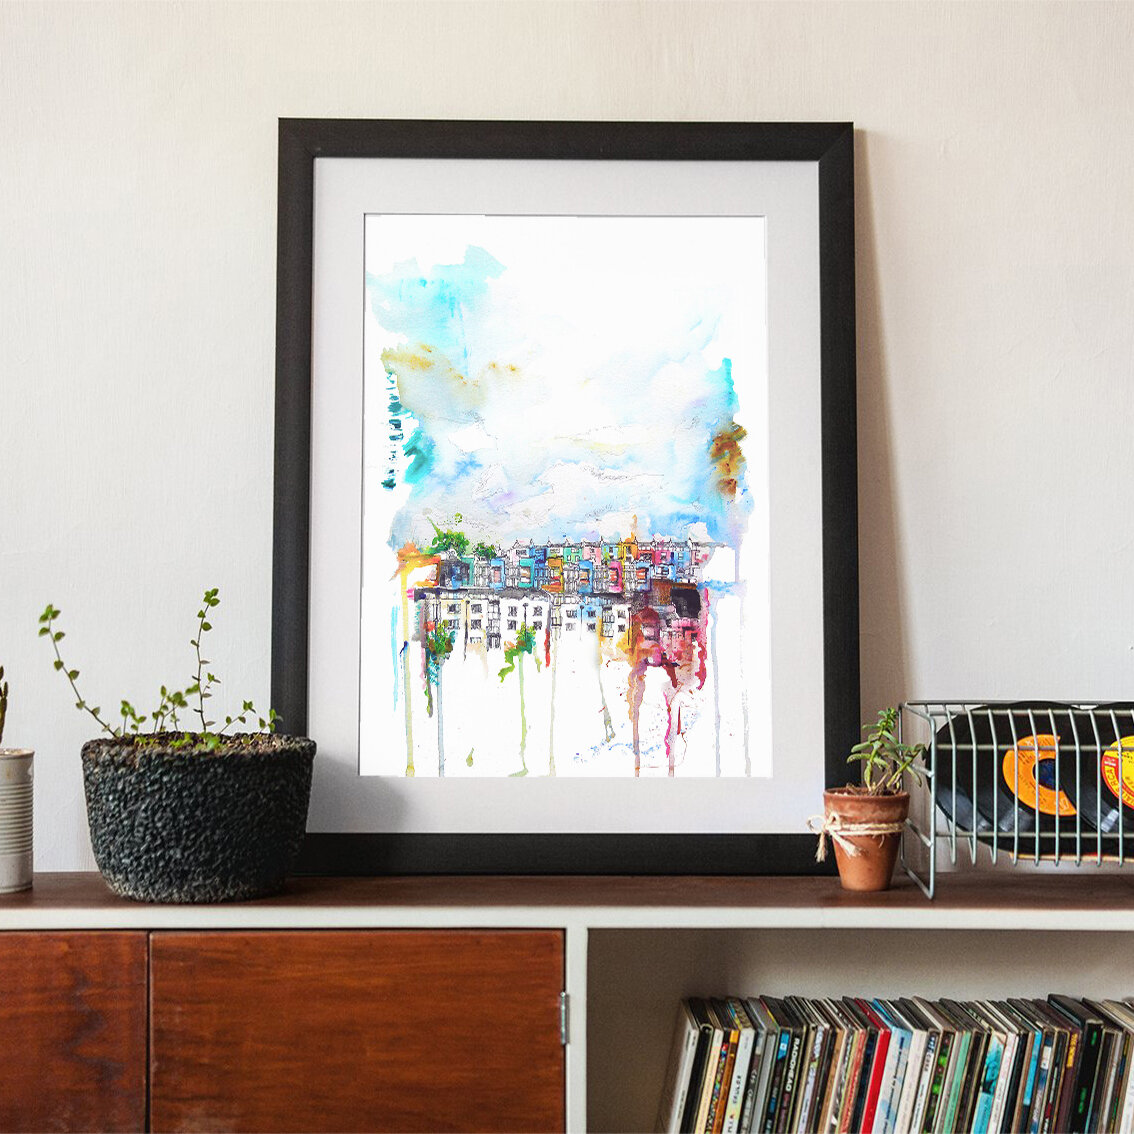 Colourful framed city print by Christopher David Jones